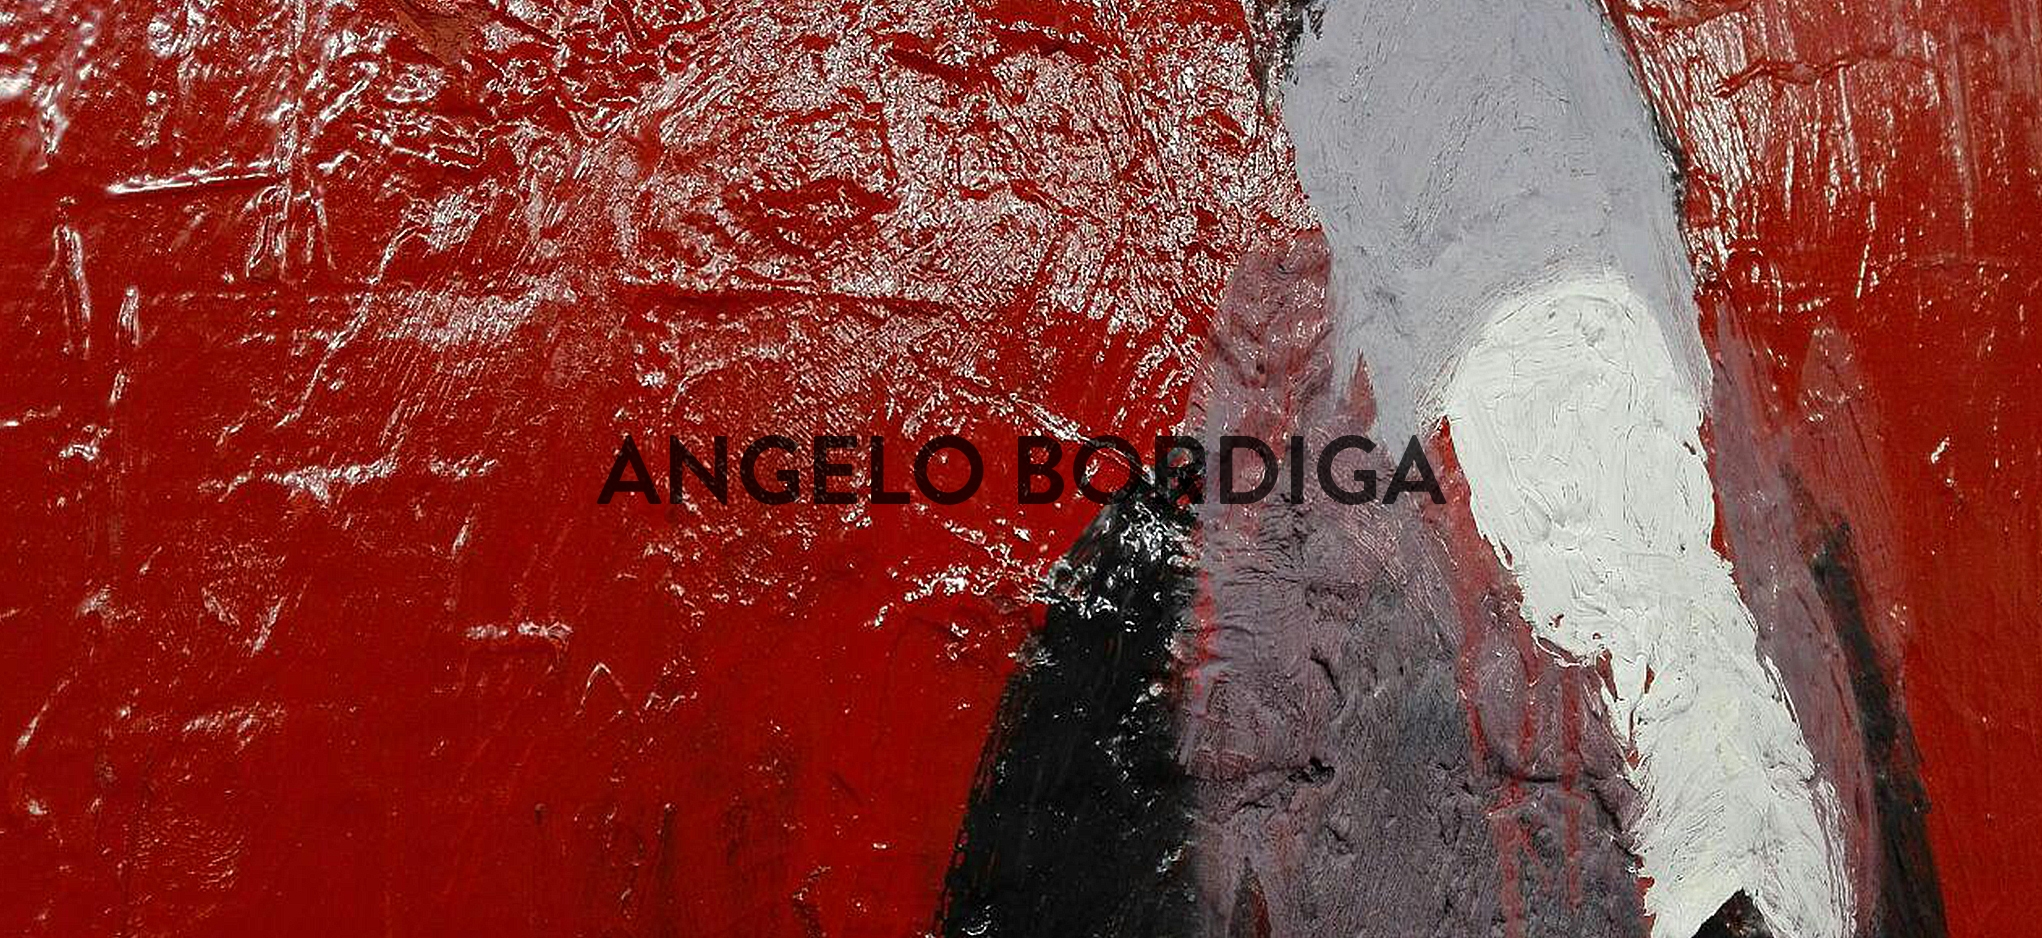 Angelo Bordiga